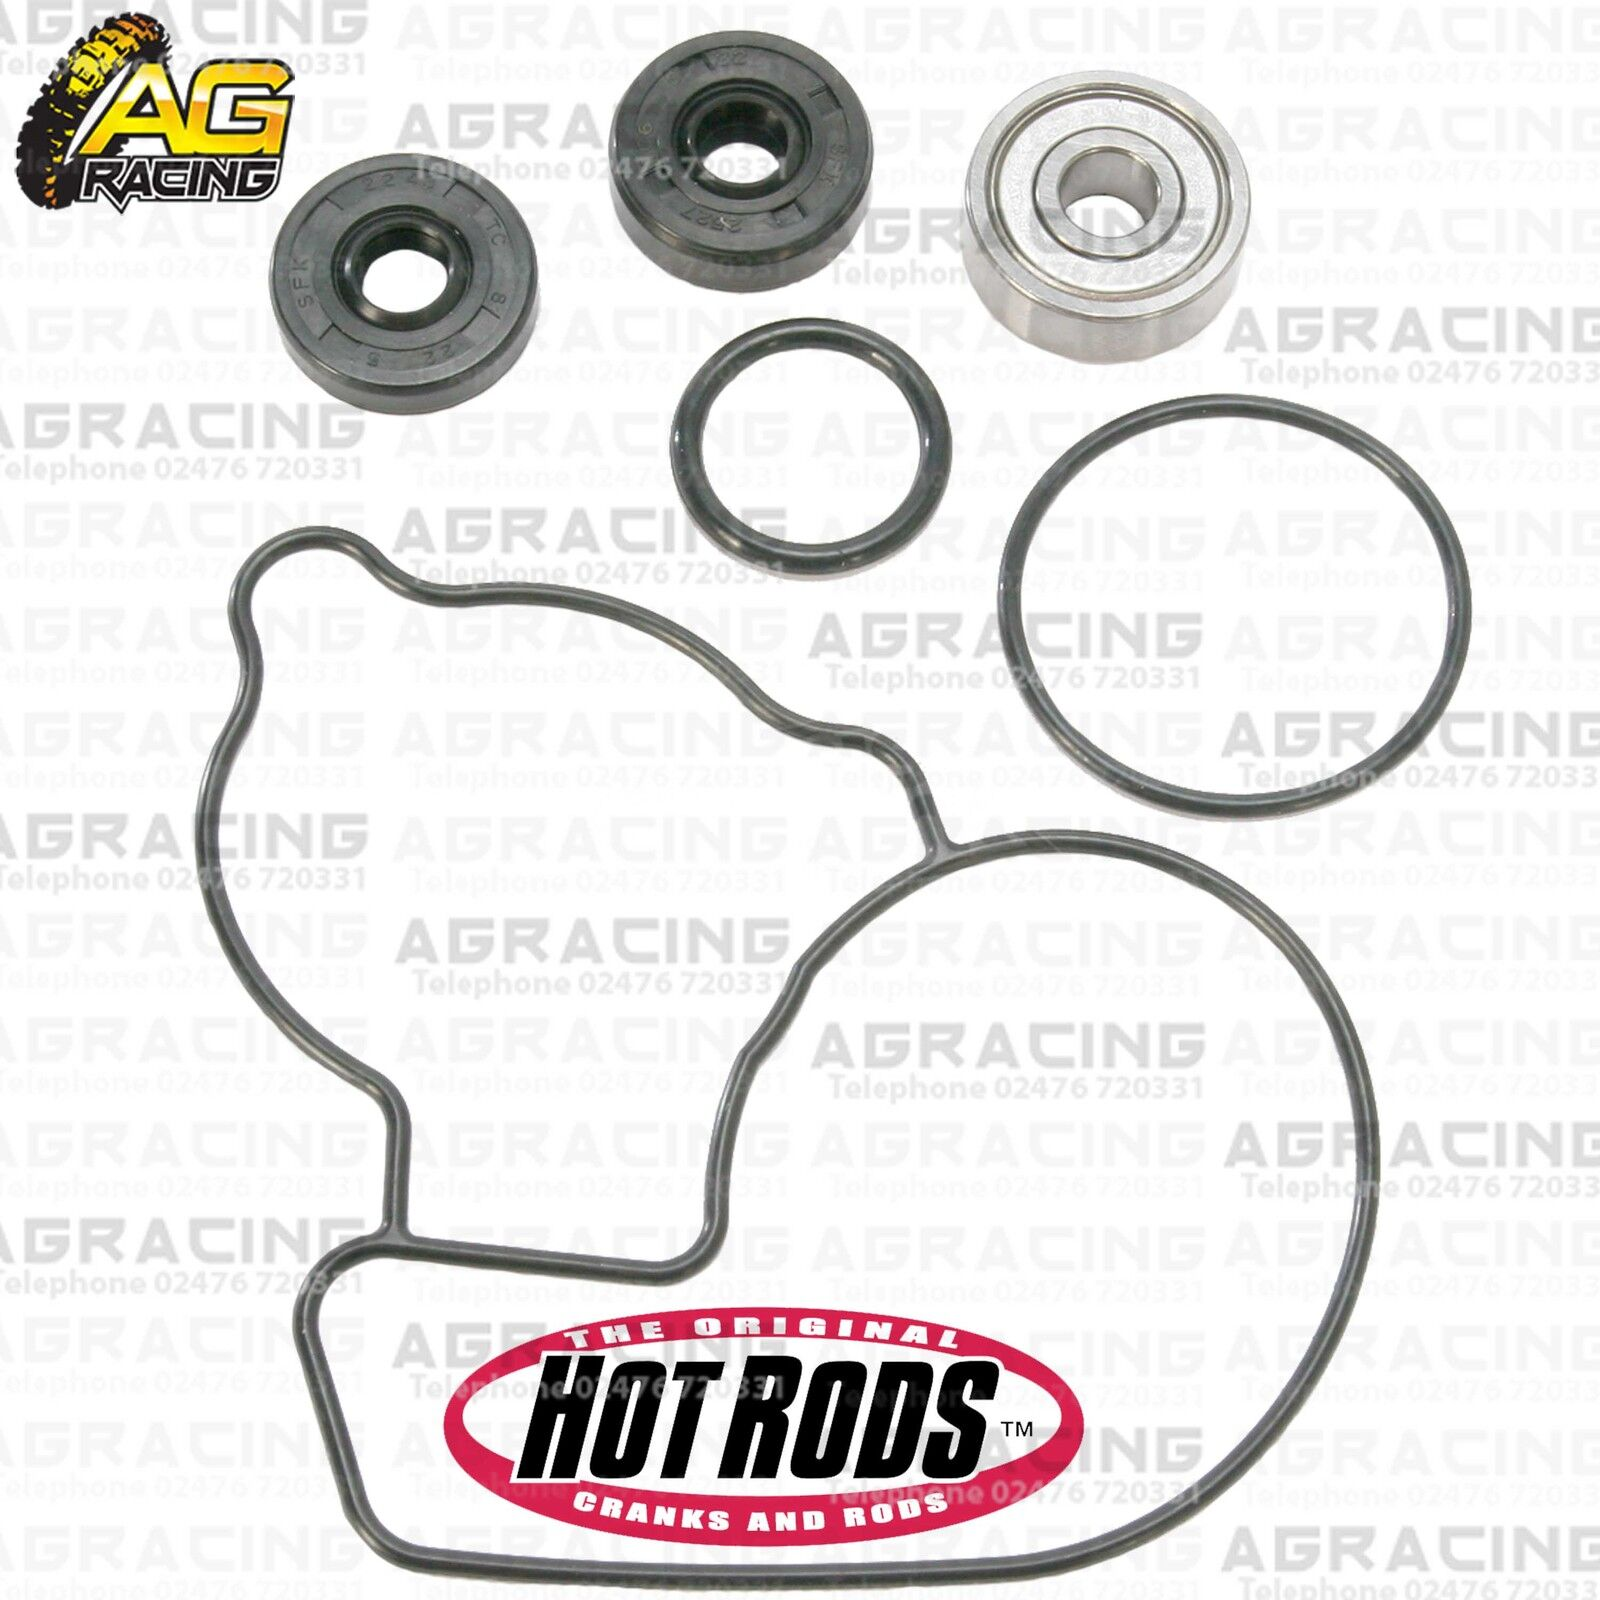 Hot Rods Water Pump Repair Kit For Kawasaki KX 250F 2009